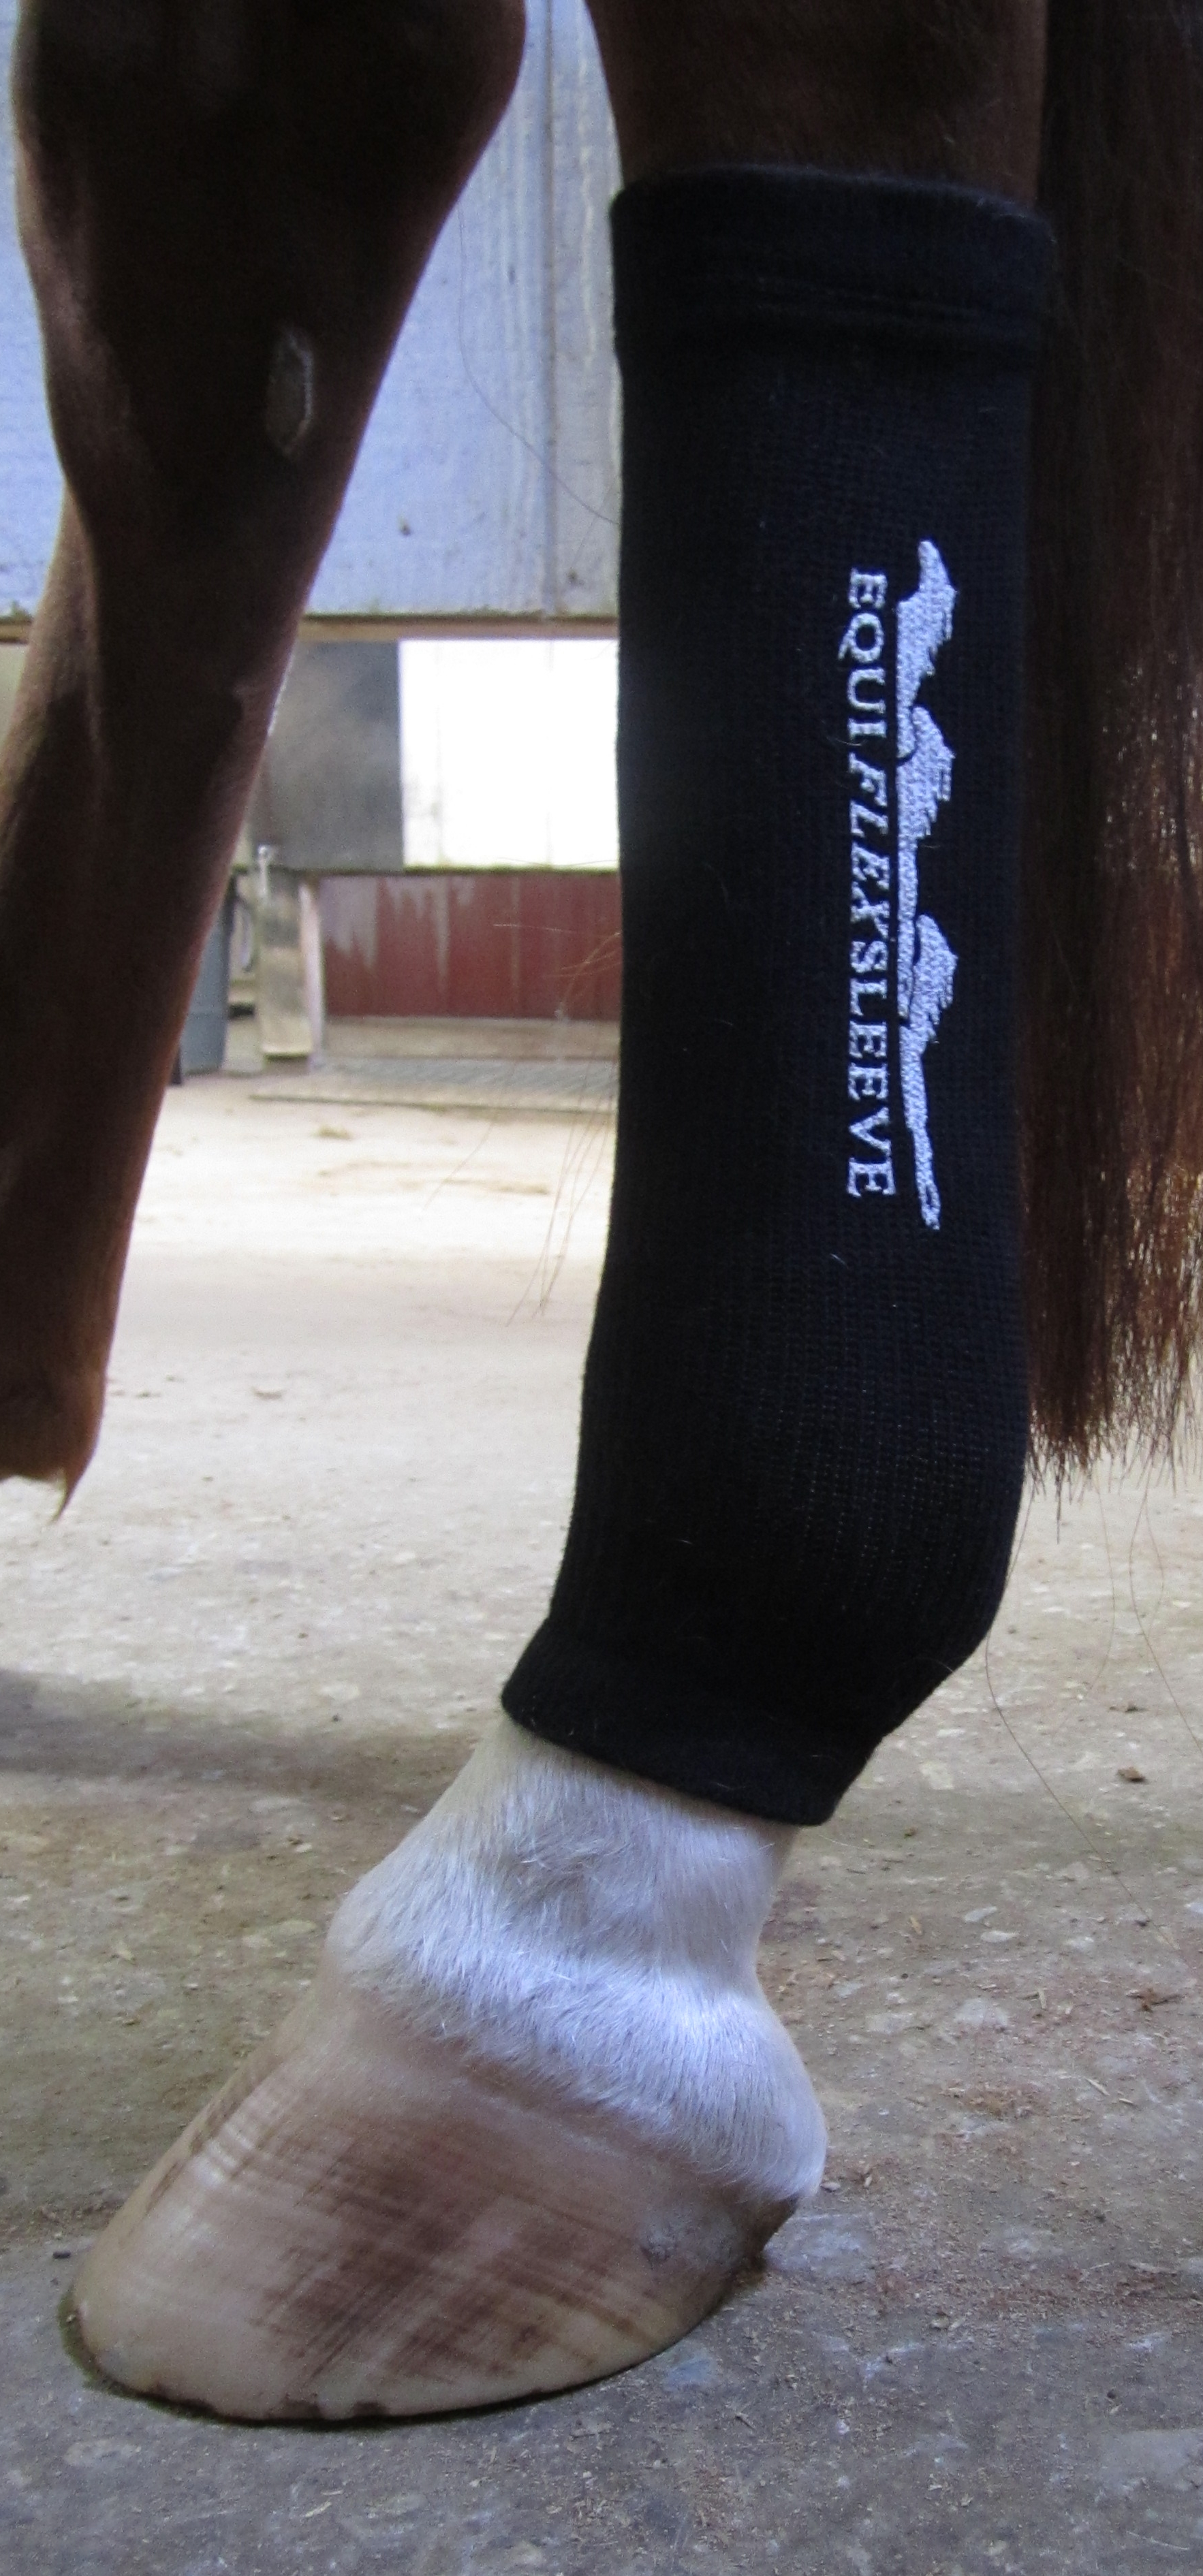 Equiflexsleeve, the revolution in equine leg support